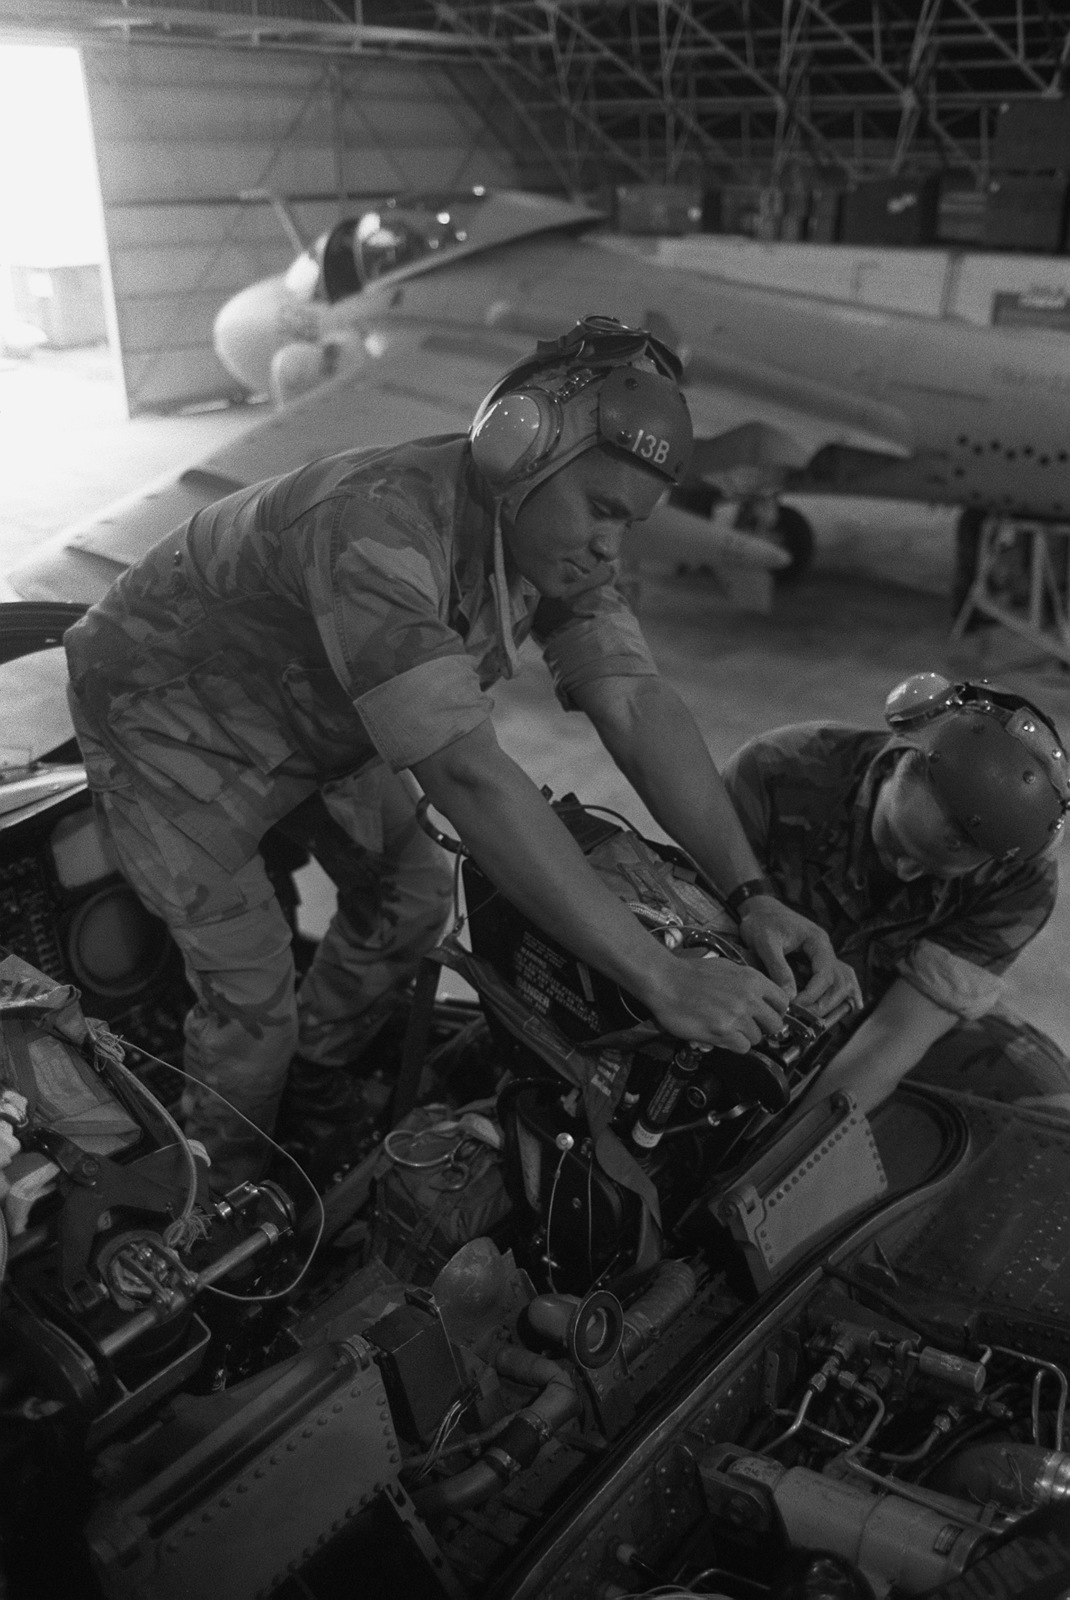 GYSGT Vince Jones and LCPL Carl A. Forester install an ejection seat in a Marine Attack Squadron 332 (VMA-332) A-6E Intruder aircraft